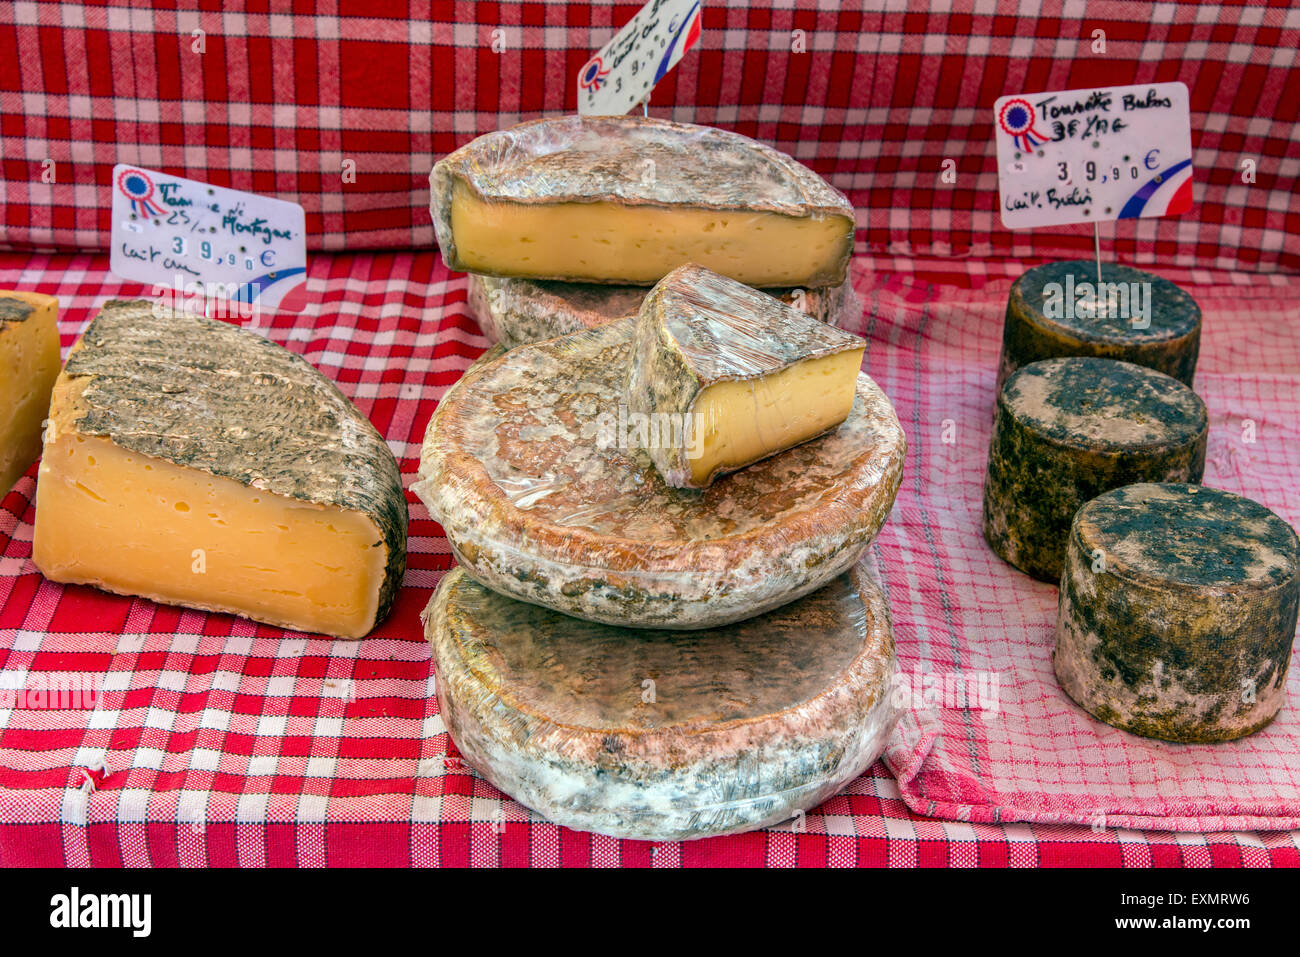 Local cheeses on sale at the market, Carpentras, Provence, France - Stock Image